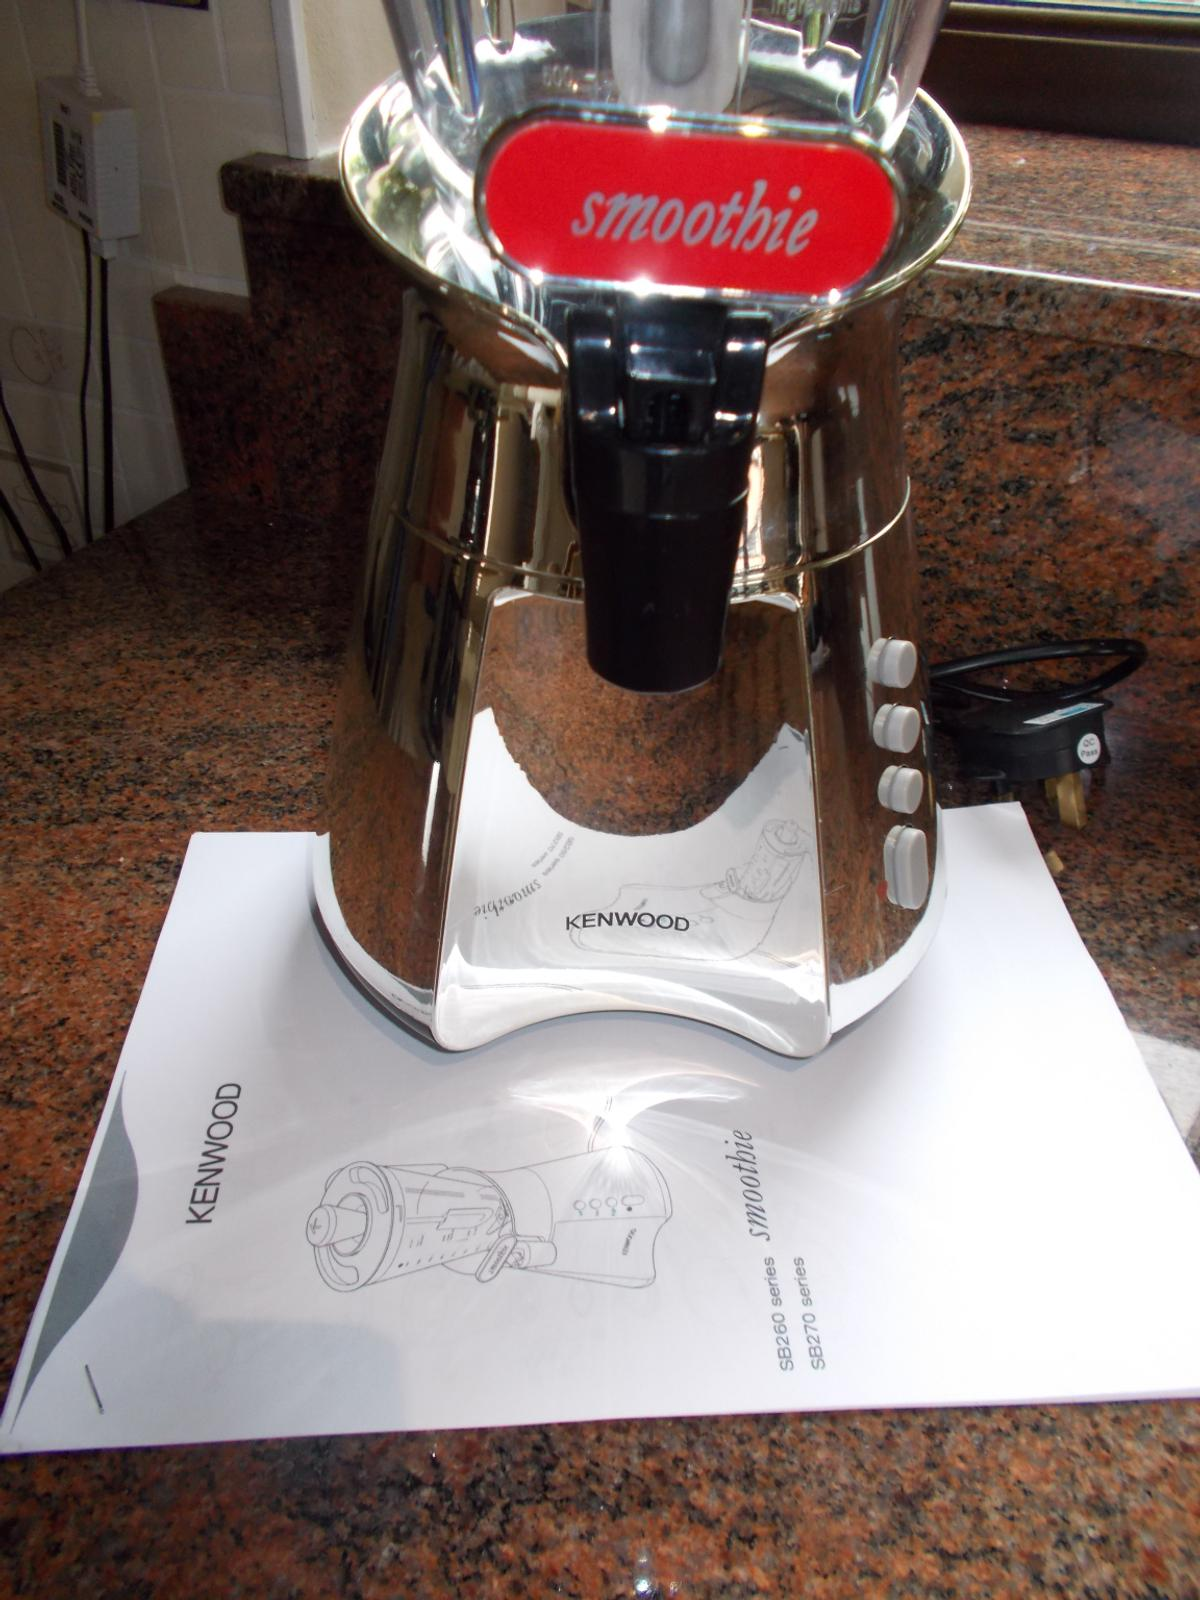 A NEW AND UNUSED ELECTRIC KENWOOD SMOOTHIE MAKER, C/W INSTRUCTION MANUAL BUT NO BOX